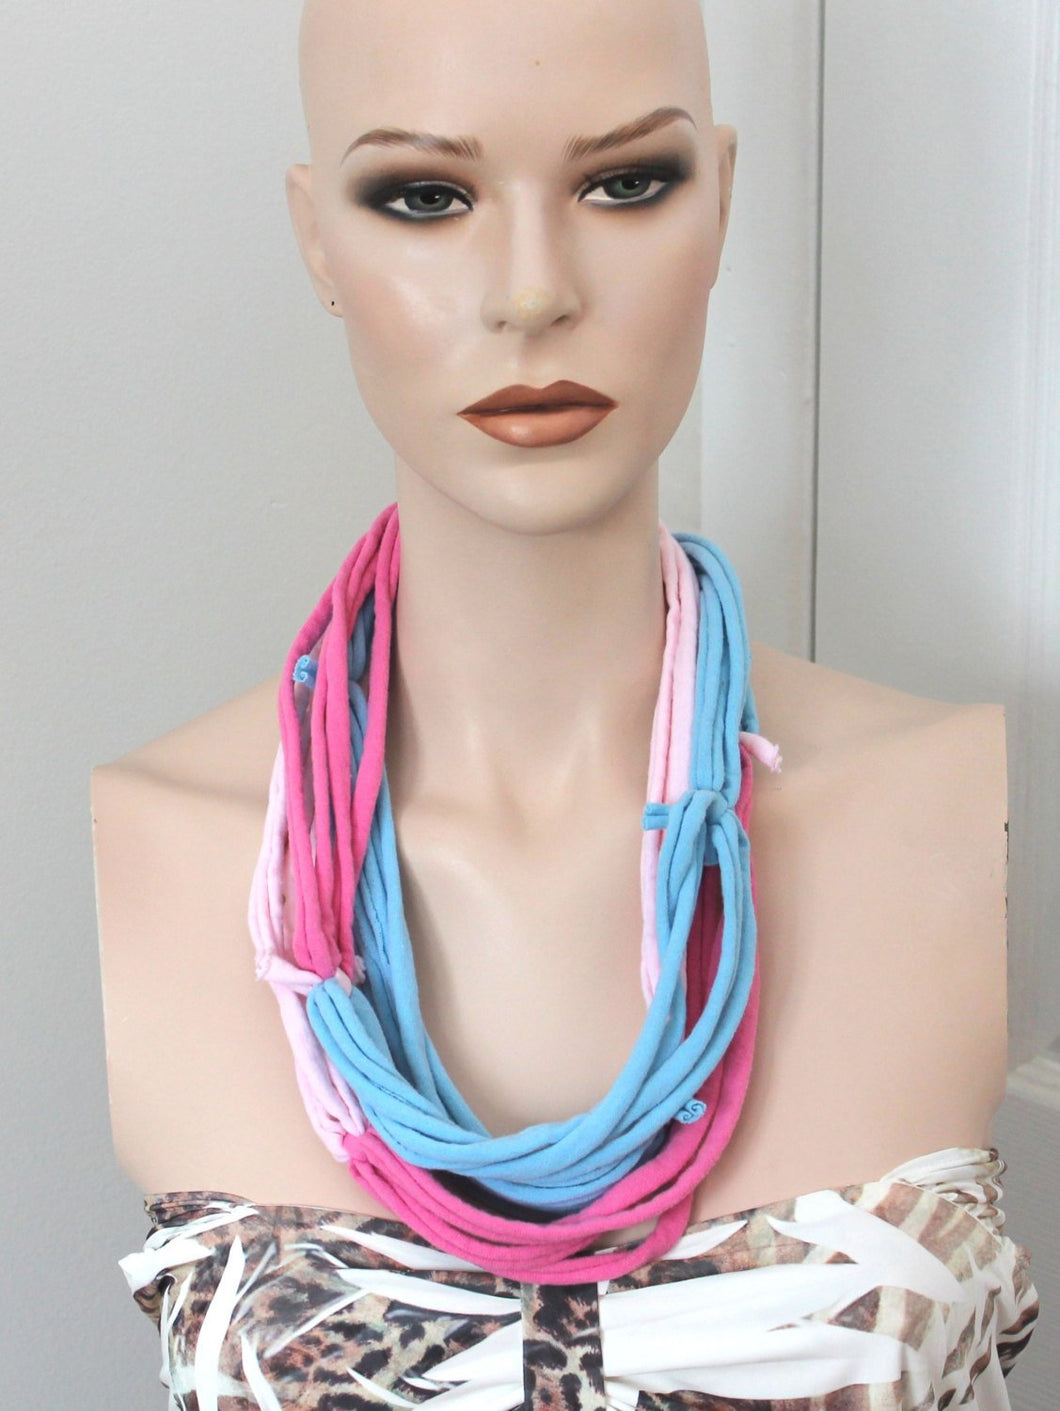 pink/blue multi strand necklace,pink/blue jersey t-shirt necklace,jersey multi-strand necklace,pink/blue necklace,women,teen,unisex necklace